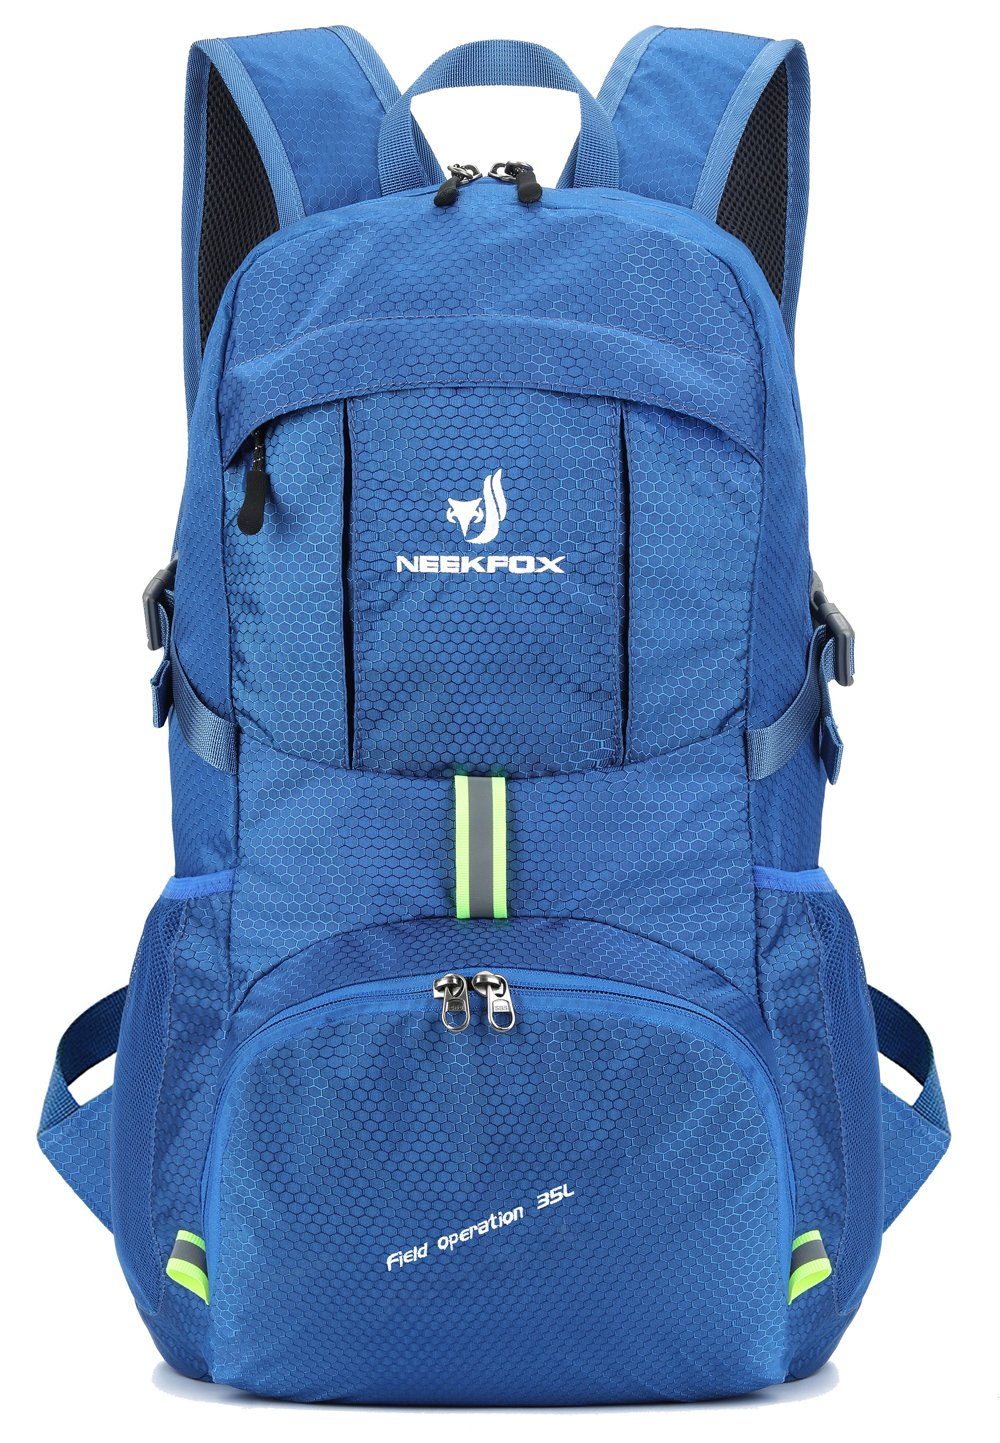 NEEKFOX Lightweight Packable Travel Hiking Backpack Daypack,35L Foldable Camping Backpack,Ultralight Outdoor Sport Backpack NF001-BK